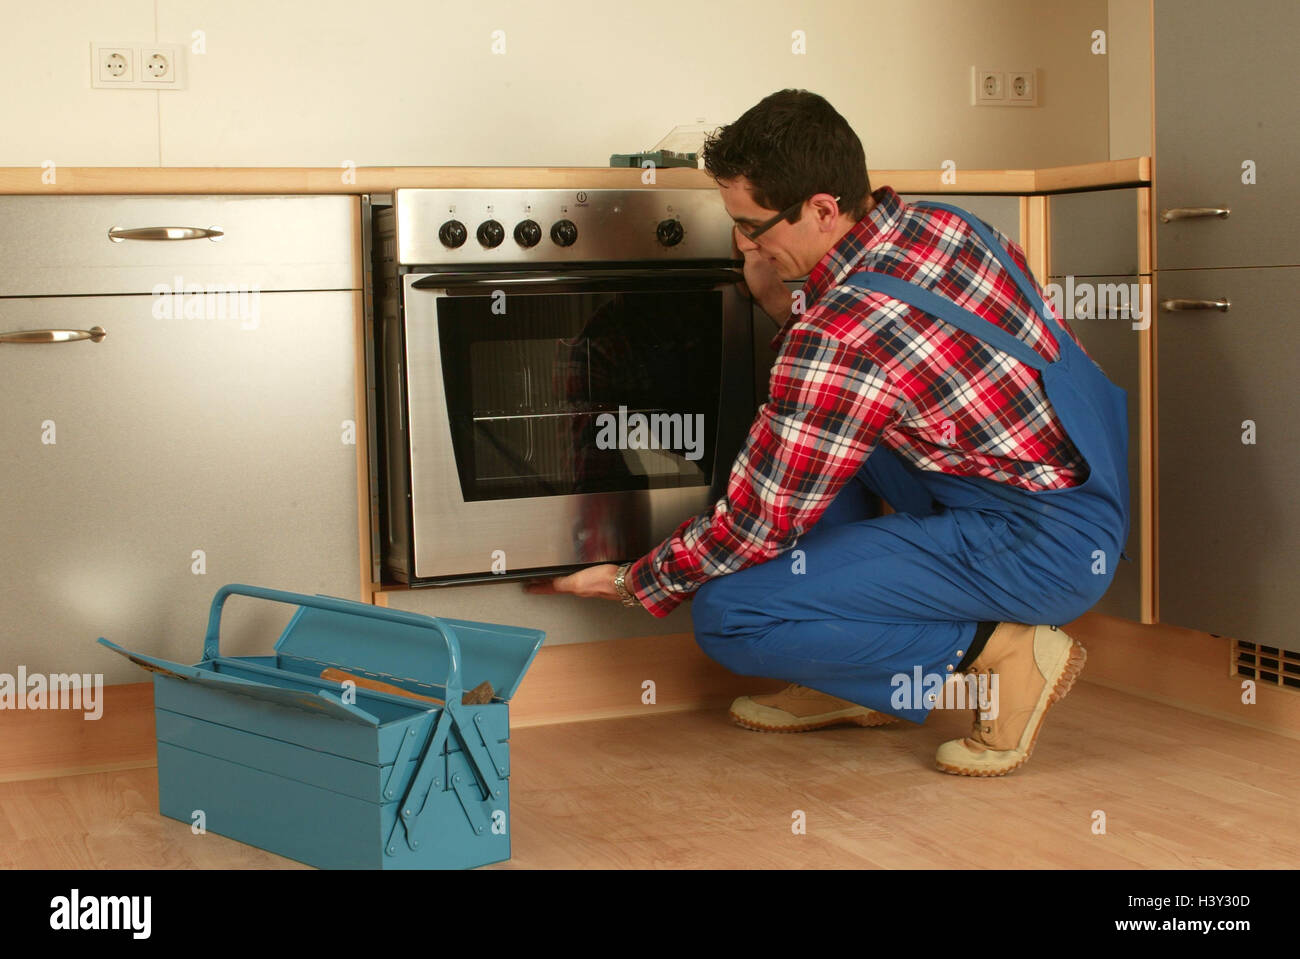 einbau kche elegant einbaukche kche express plan eiche neu ebay kuche korpus grau with einbau. Black Bedroom Furniture Sets. Home Design Ideas